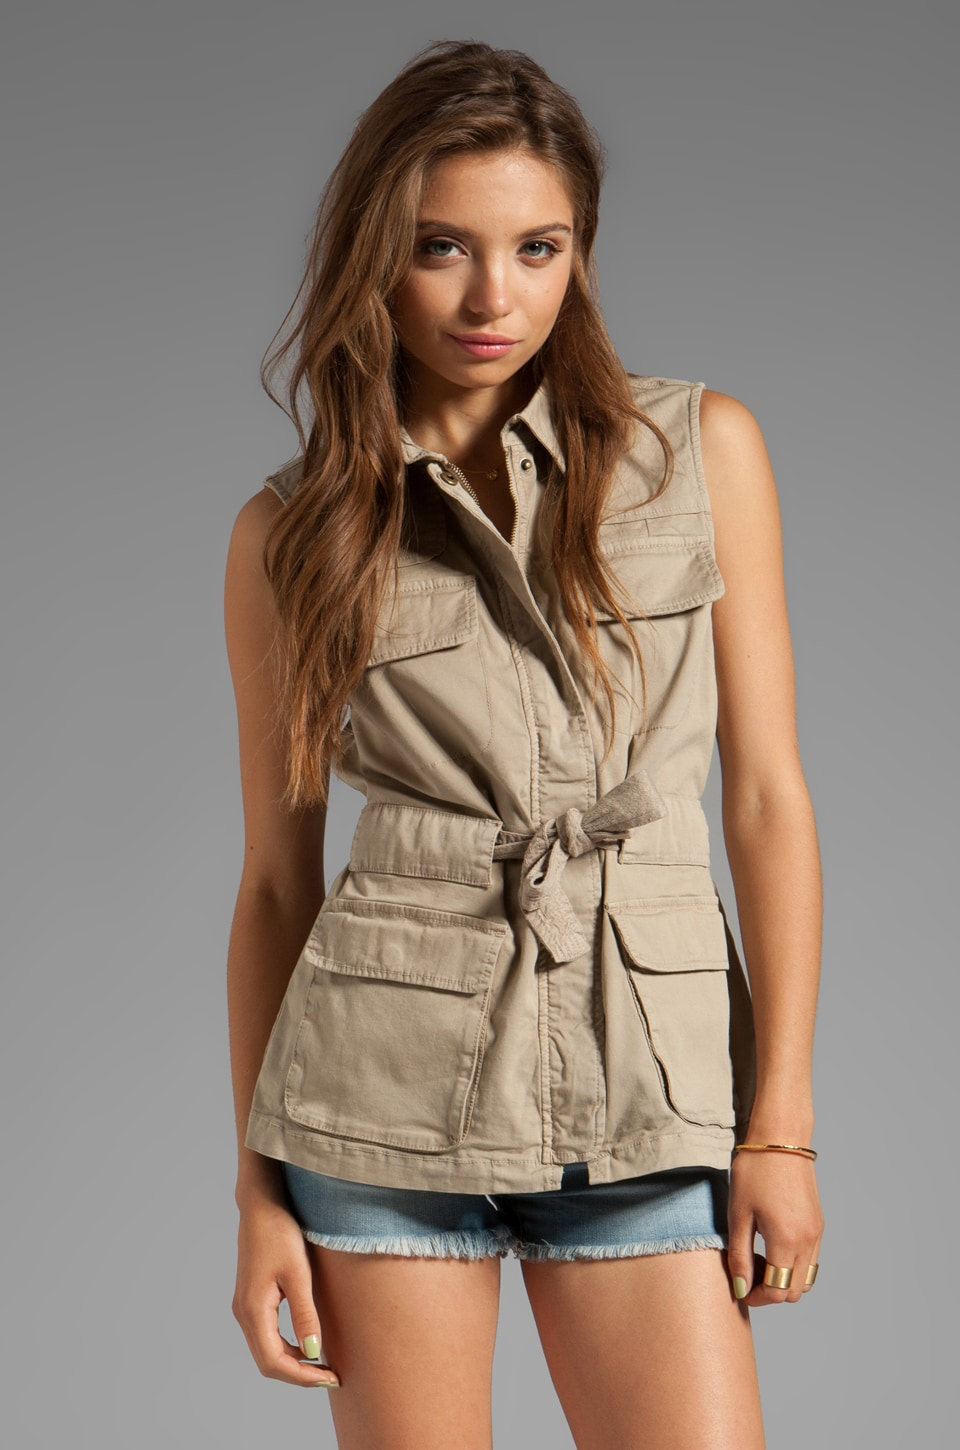 Sanctuary Safari in the City Safari Vest in Brittish Khaki